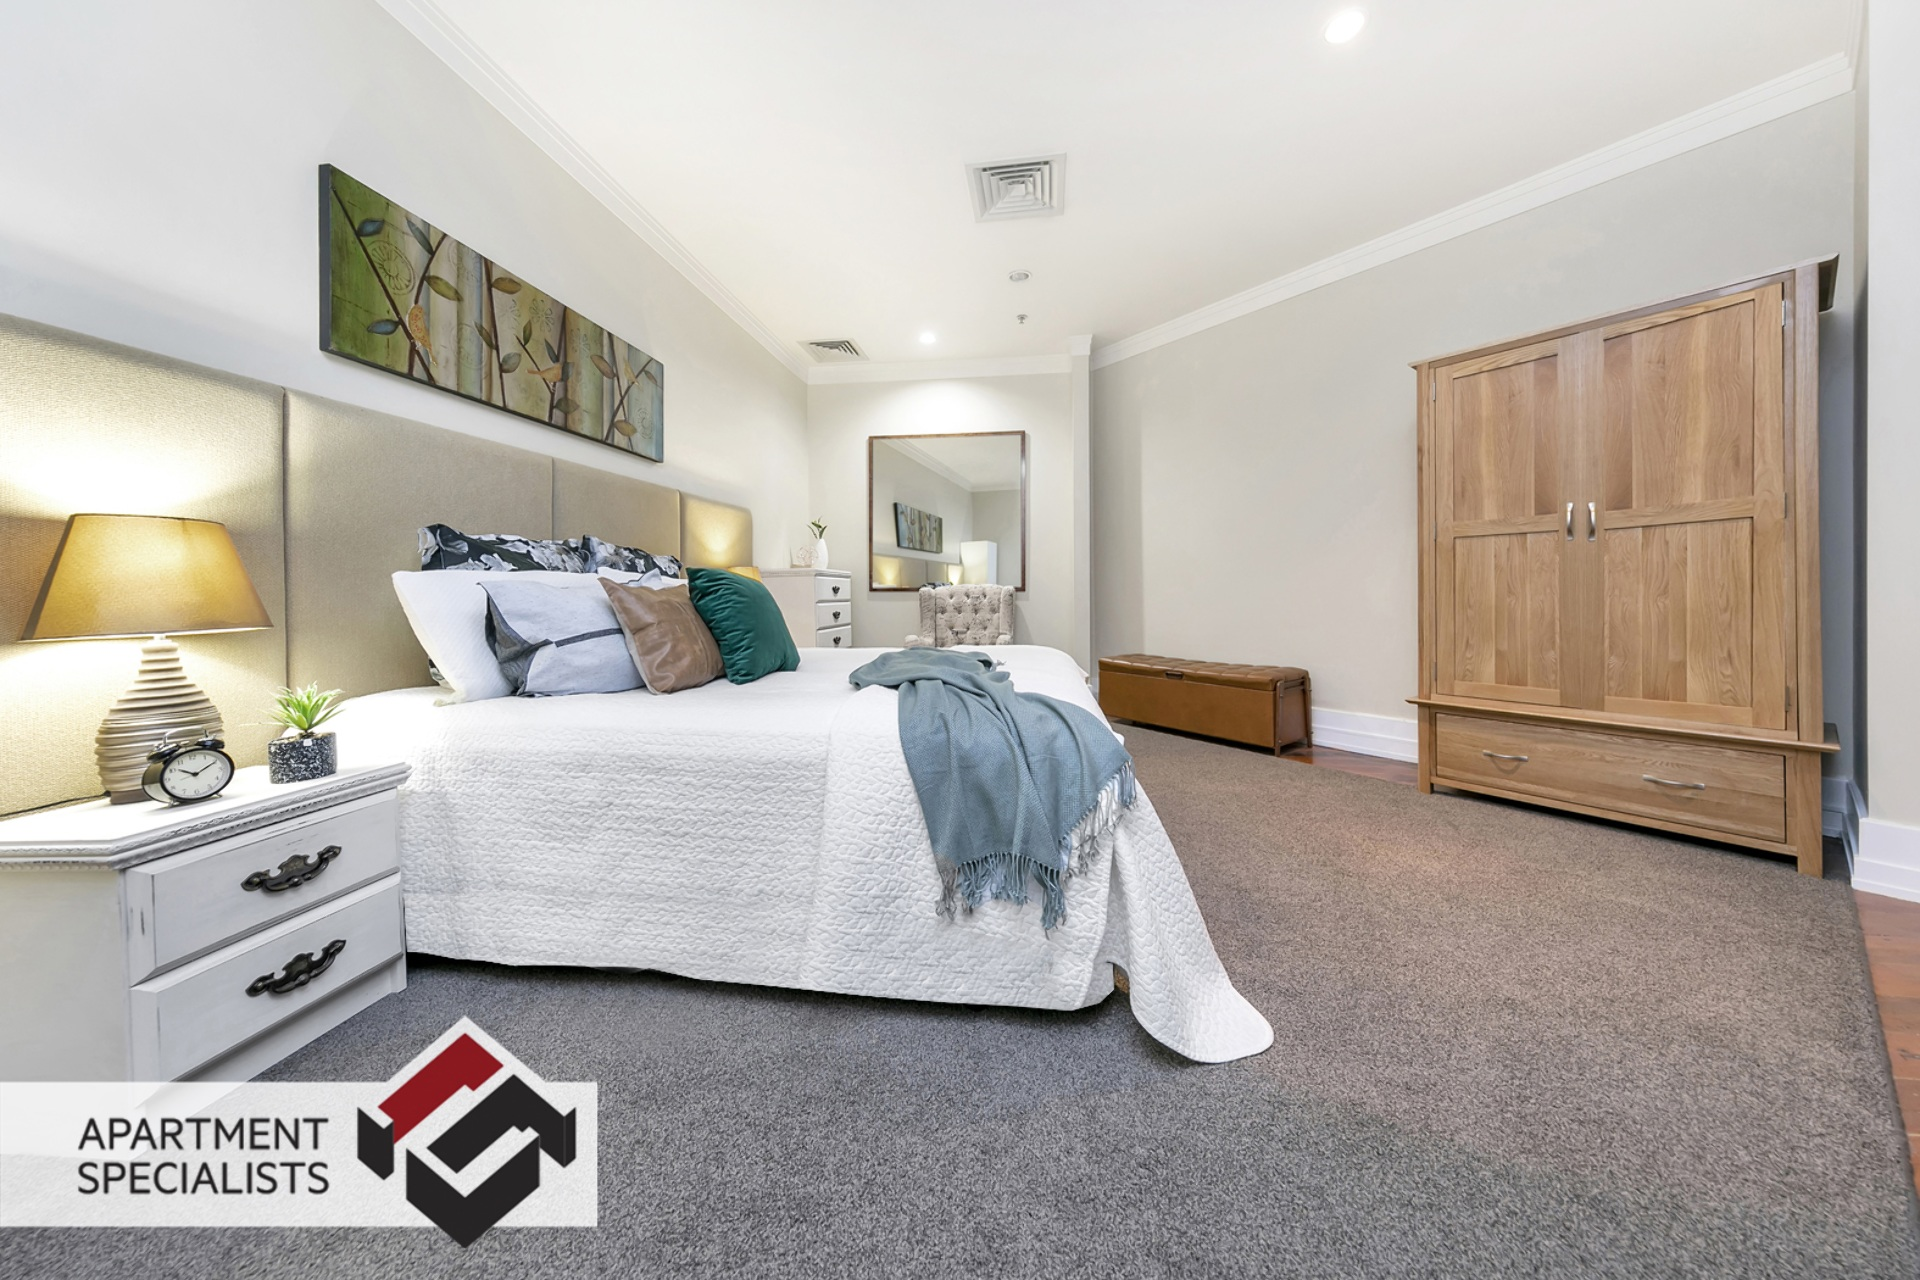 6 | 35 Hobson Street, City Centre | Apartment Specialists